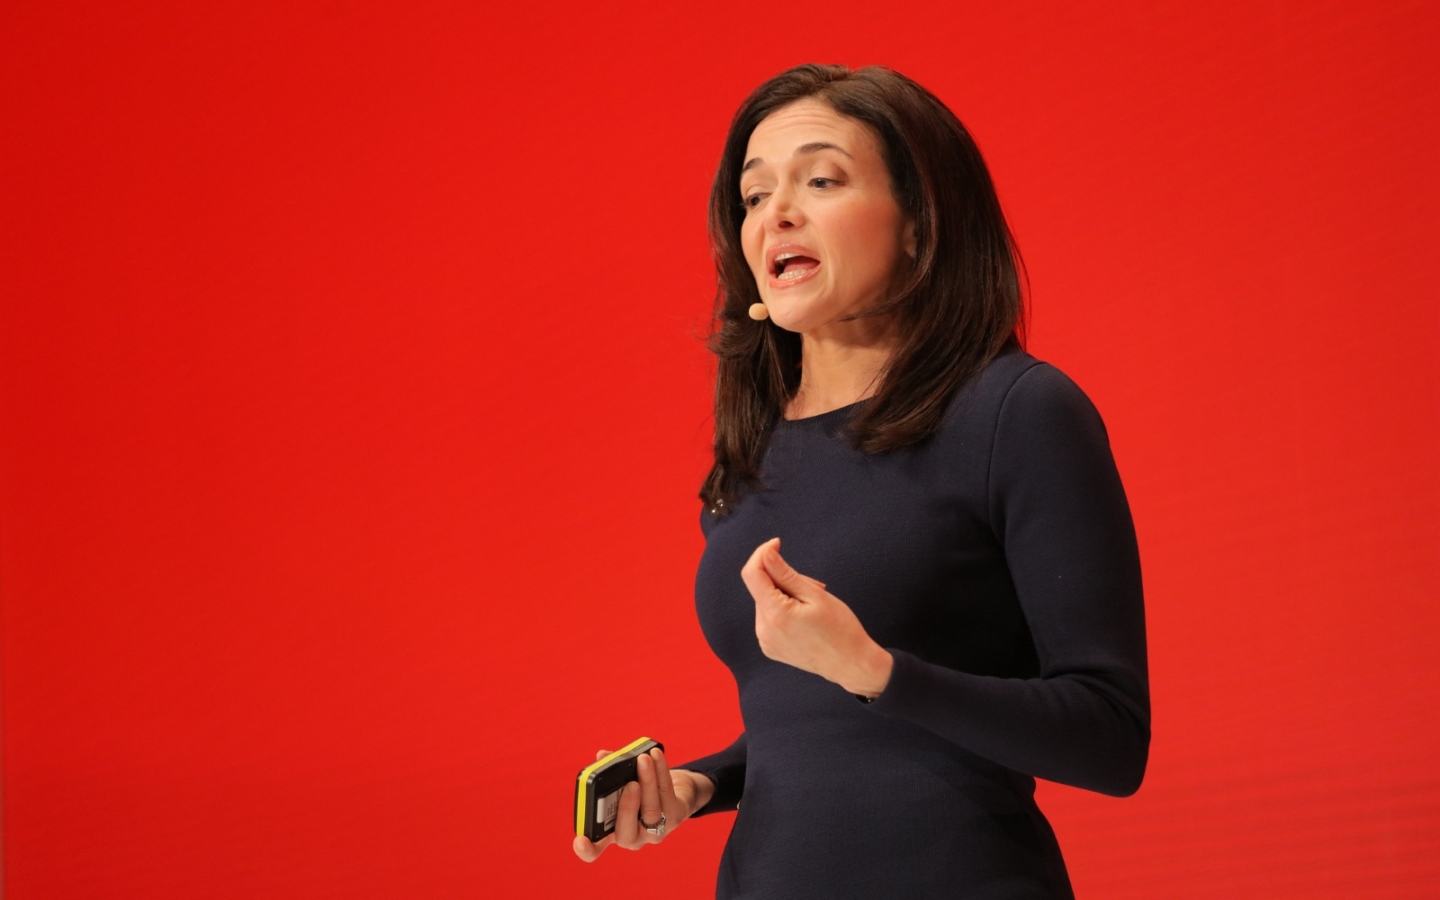 Sheryl Sandberg DLD Munich 19 (Source: Picture Alliance for DLD)